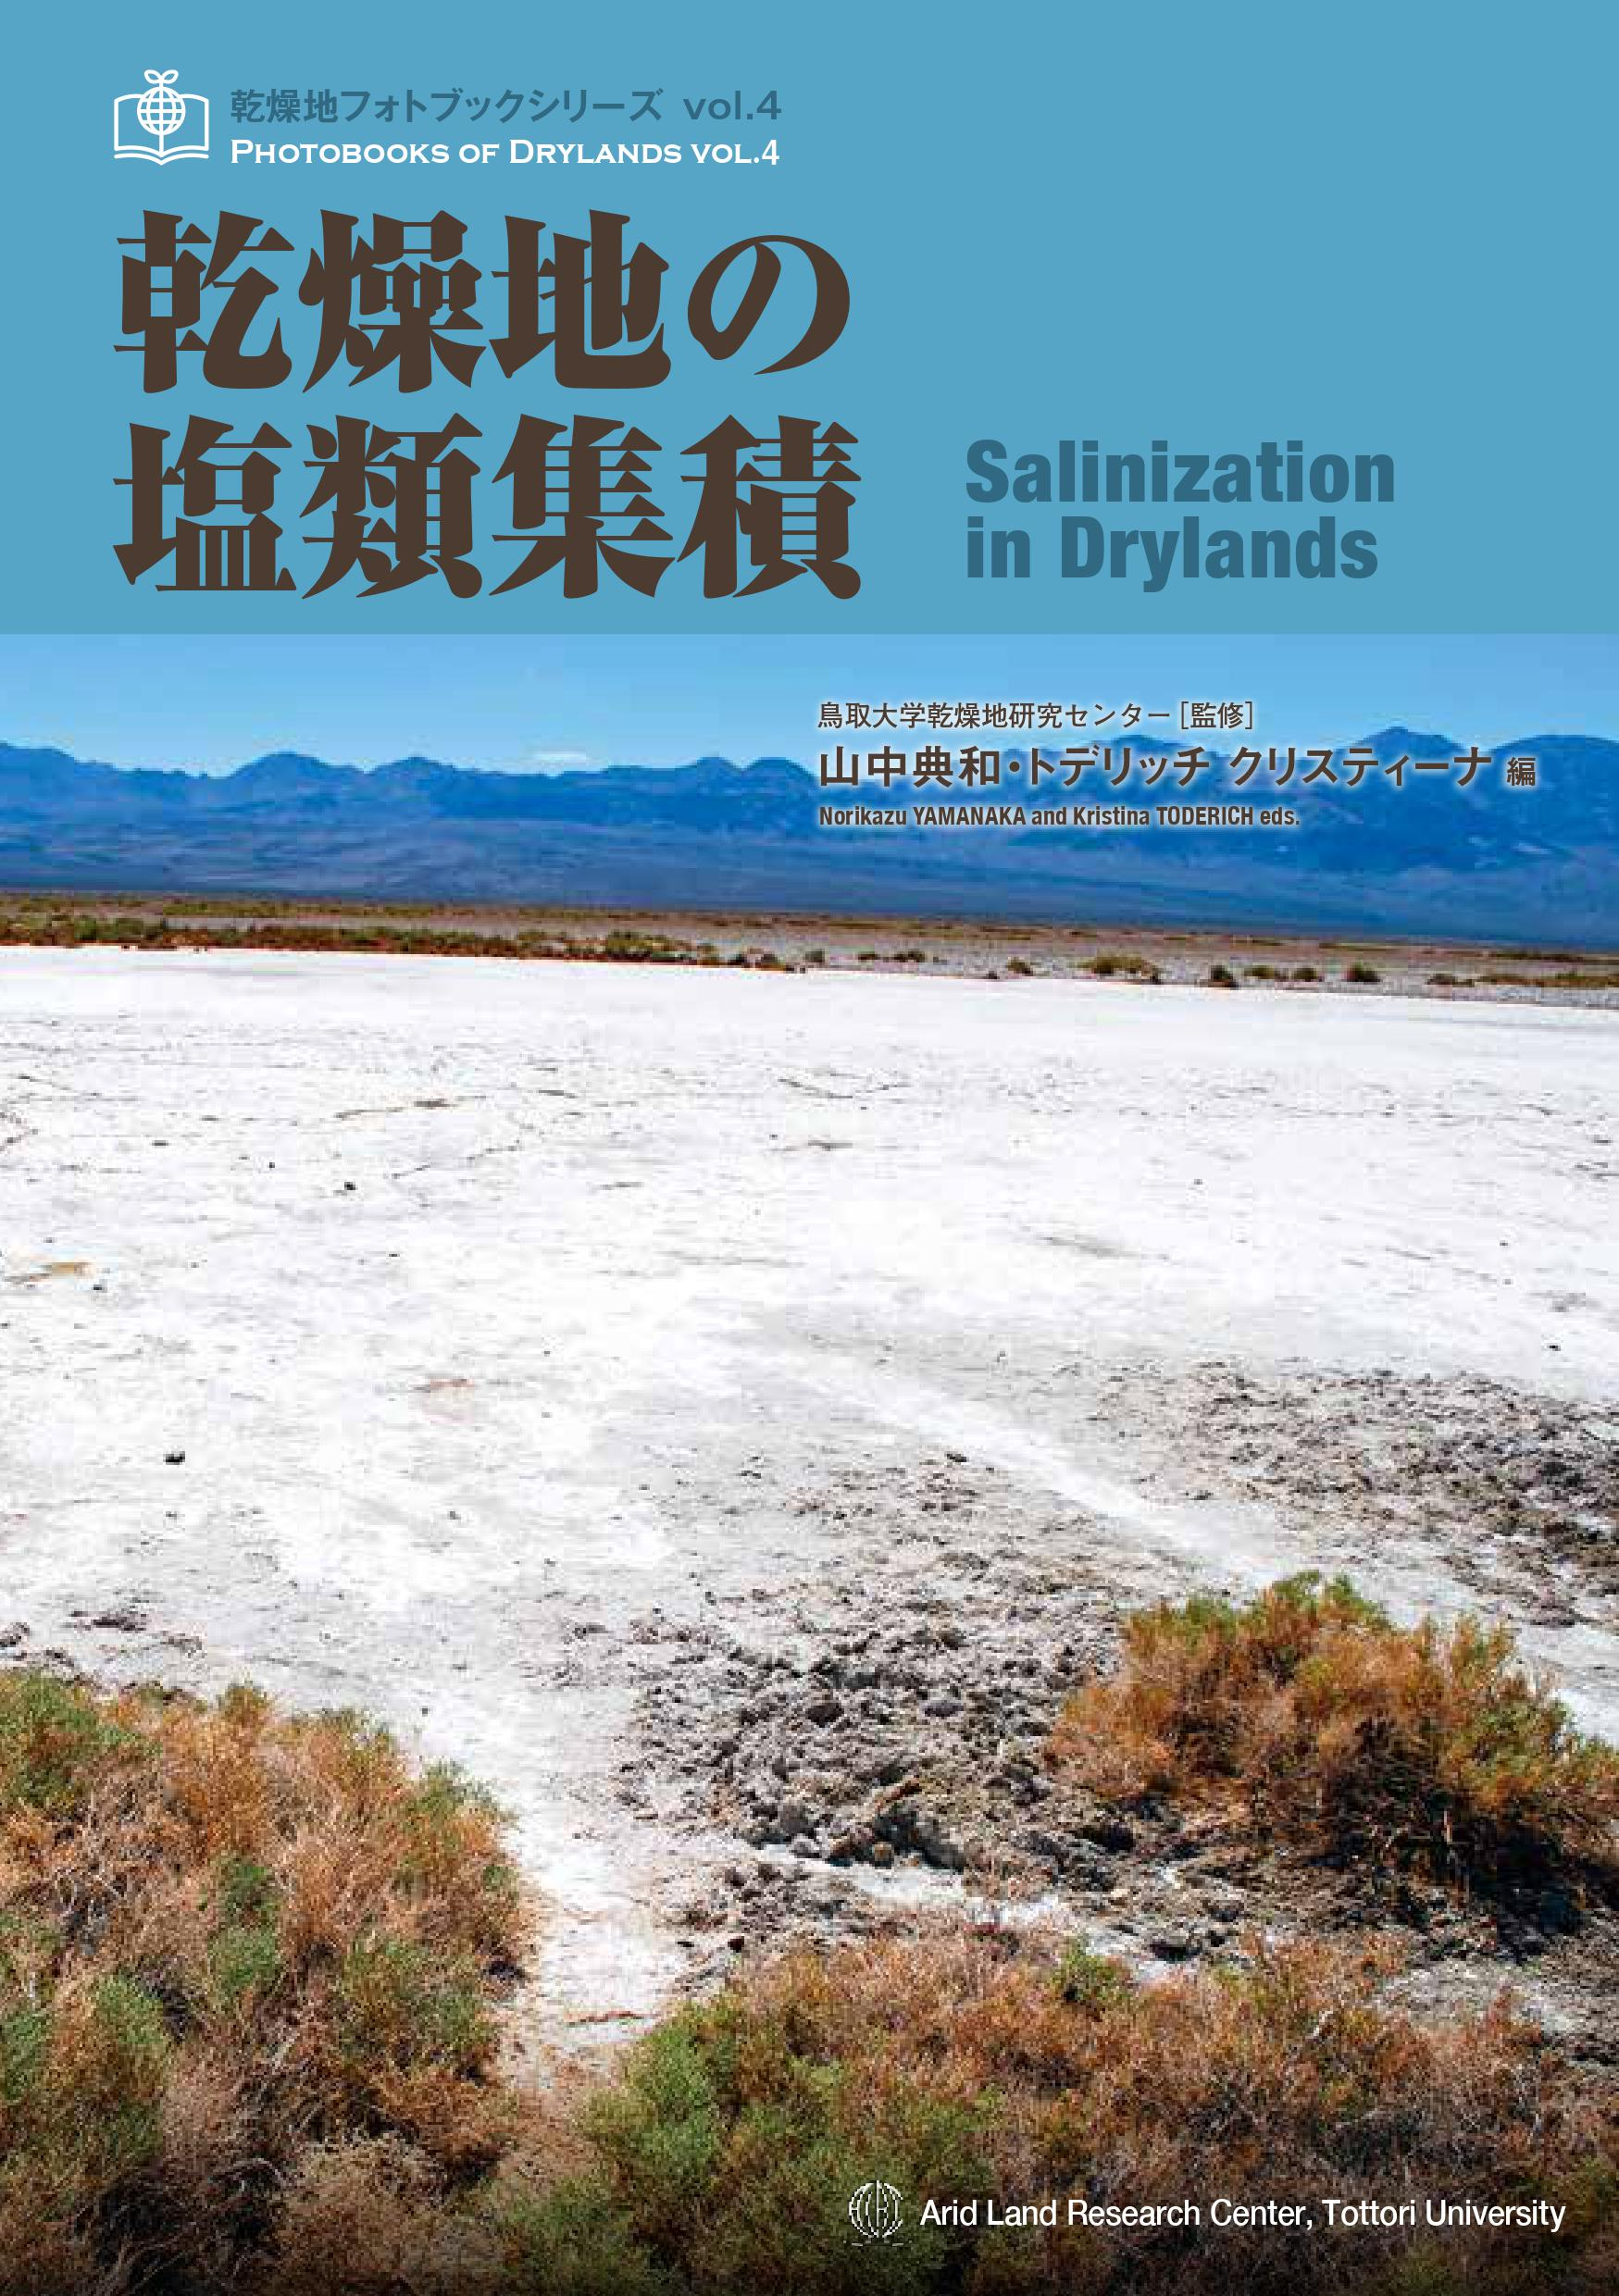 Salinization in Dryland